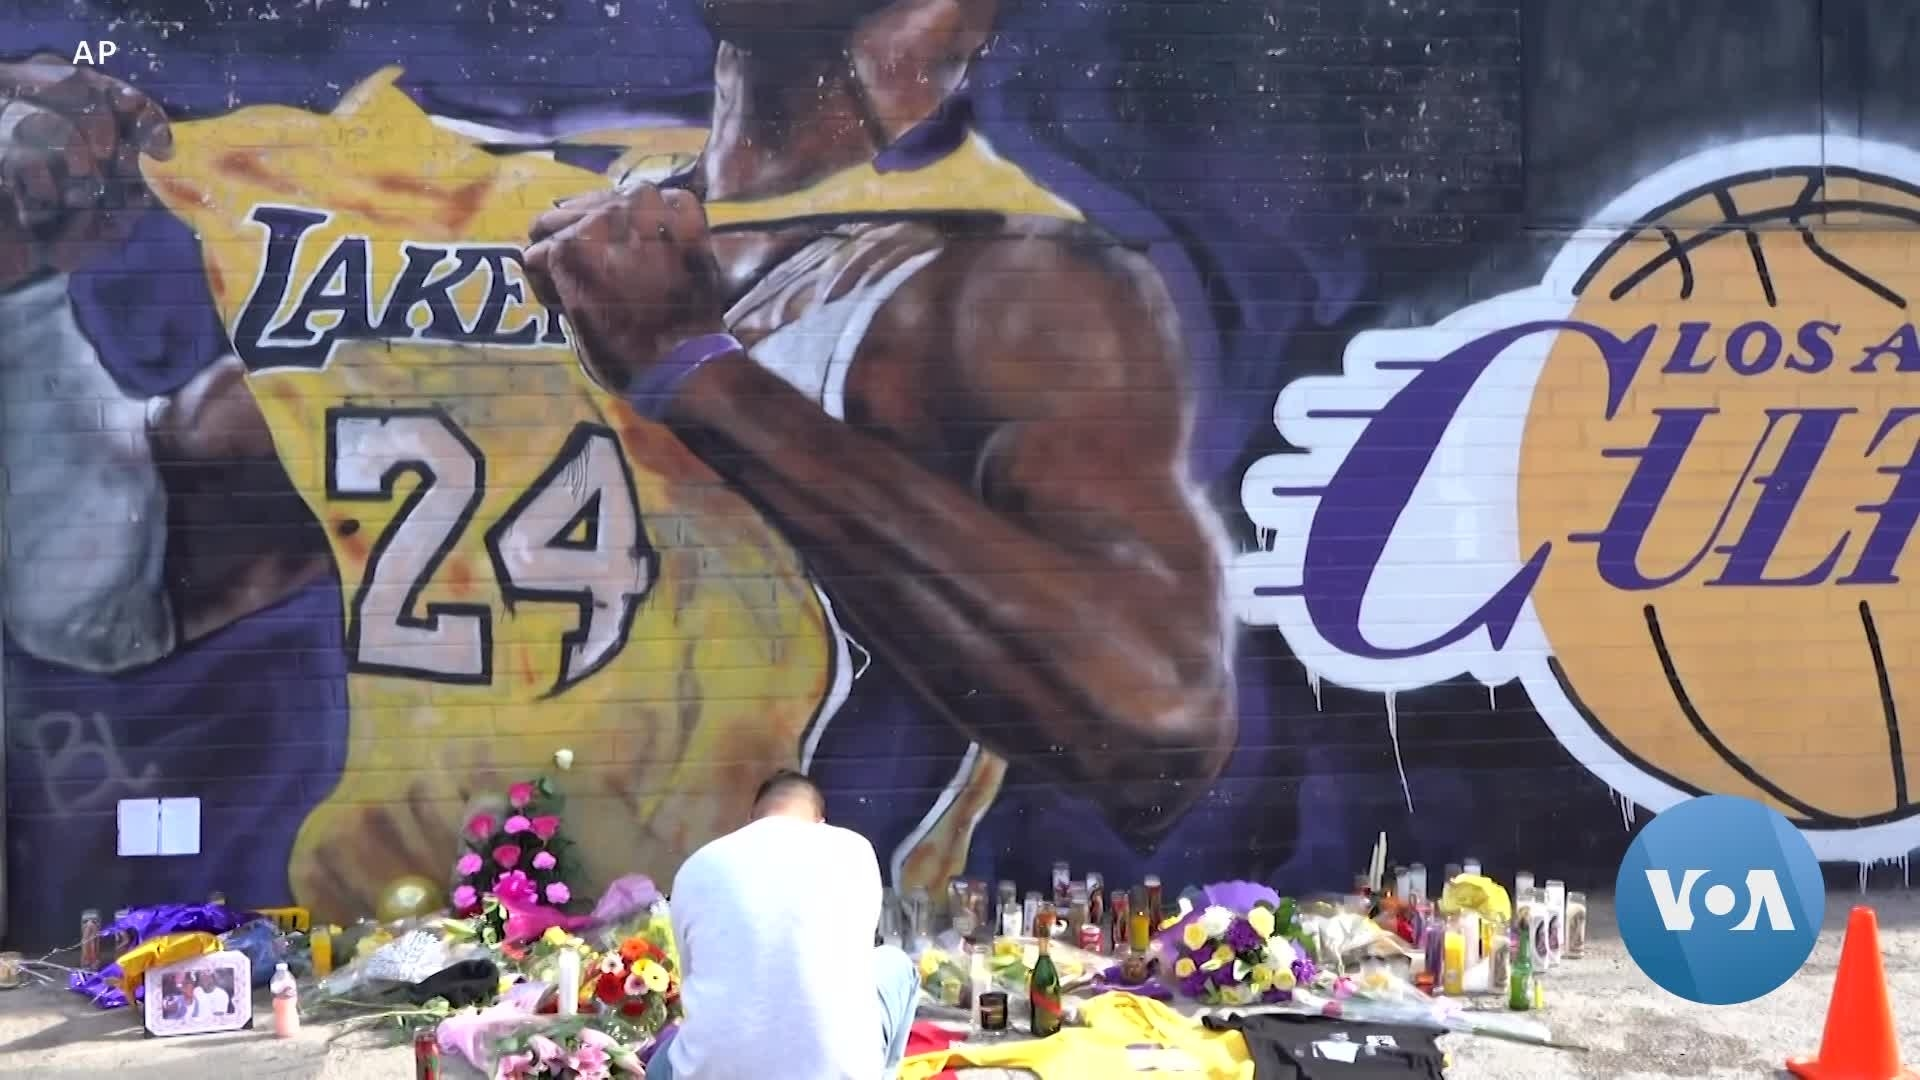 Murals Dedicated to Kobe Bryant Draw Mourners in Los Angeles